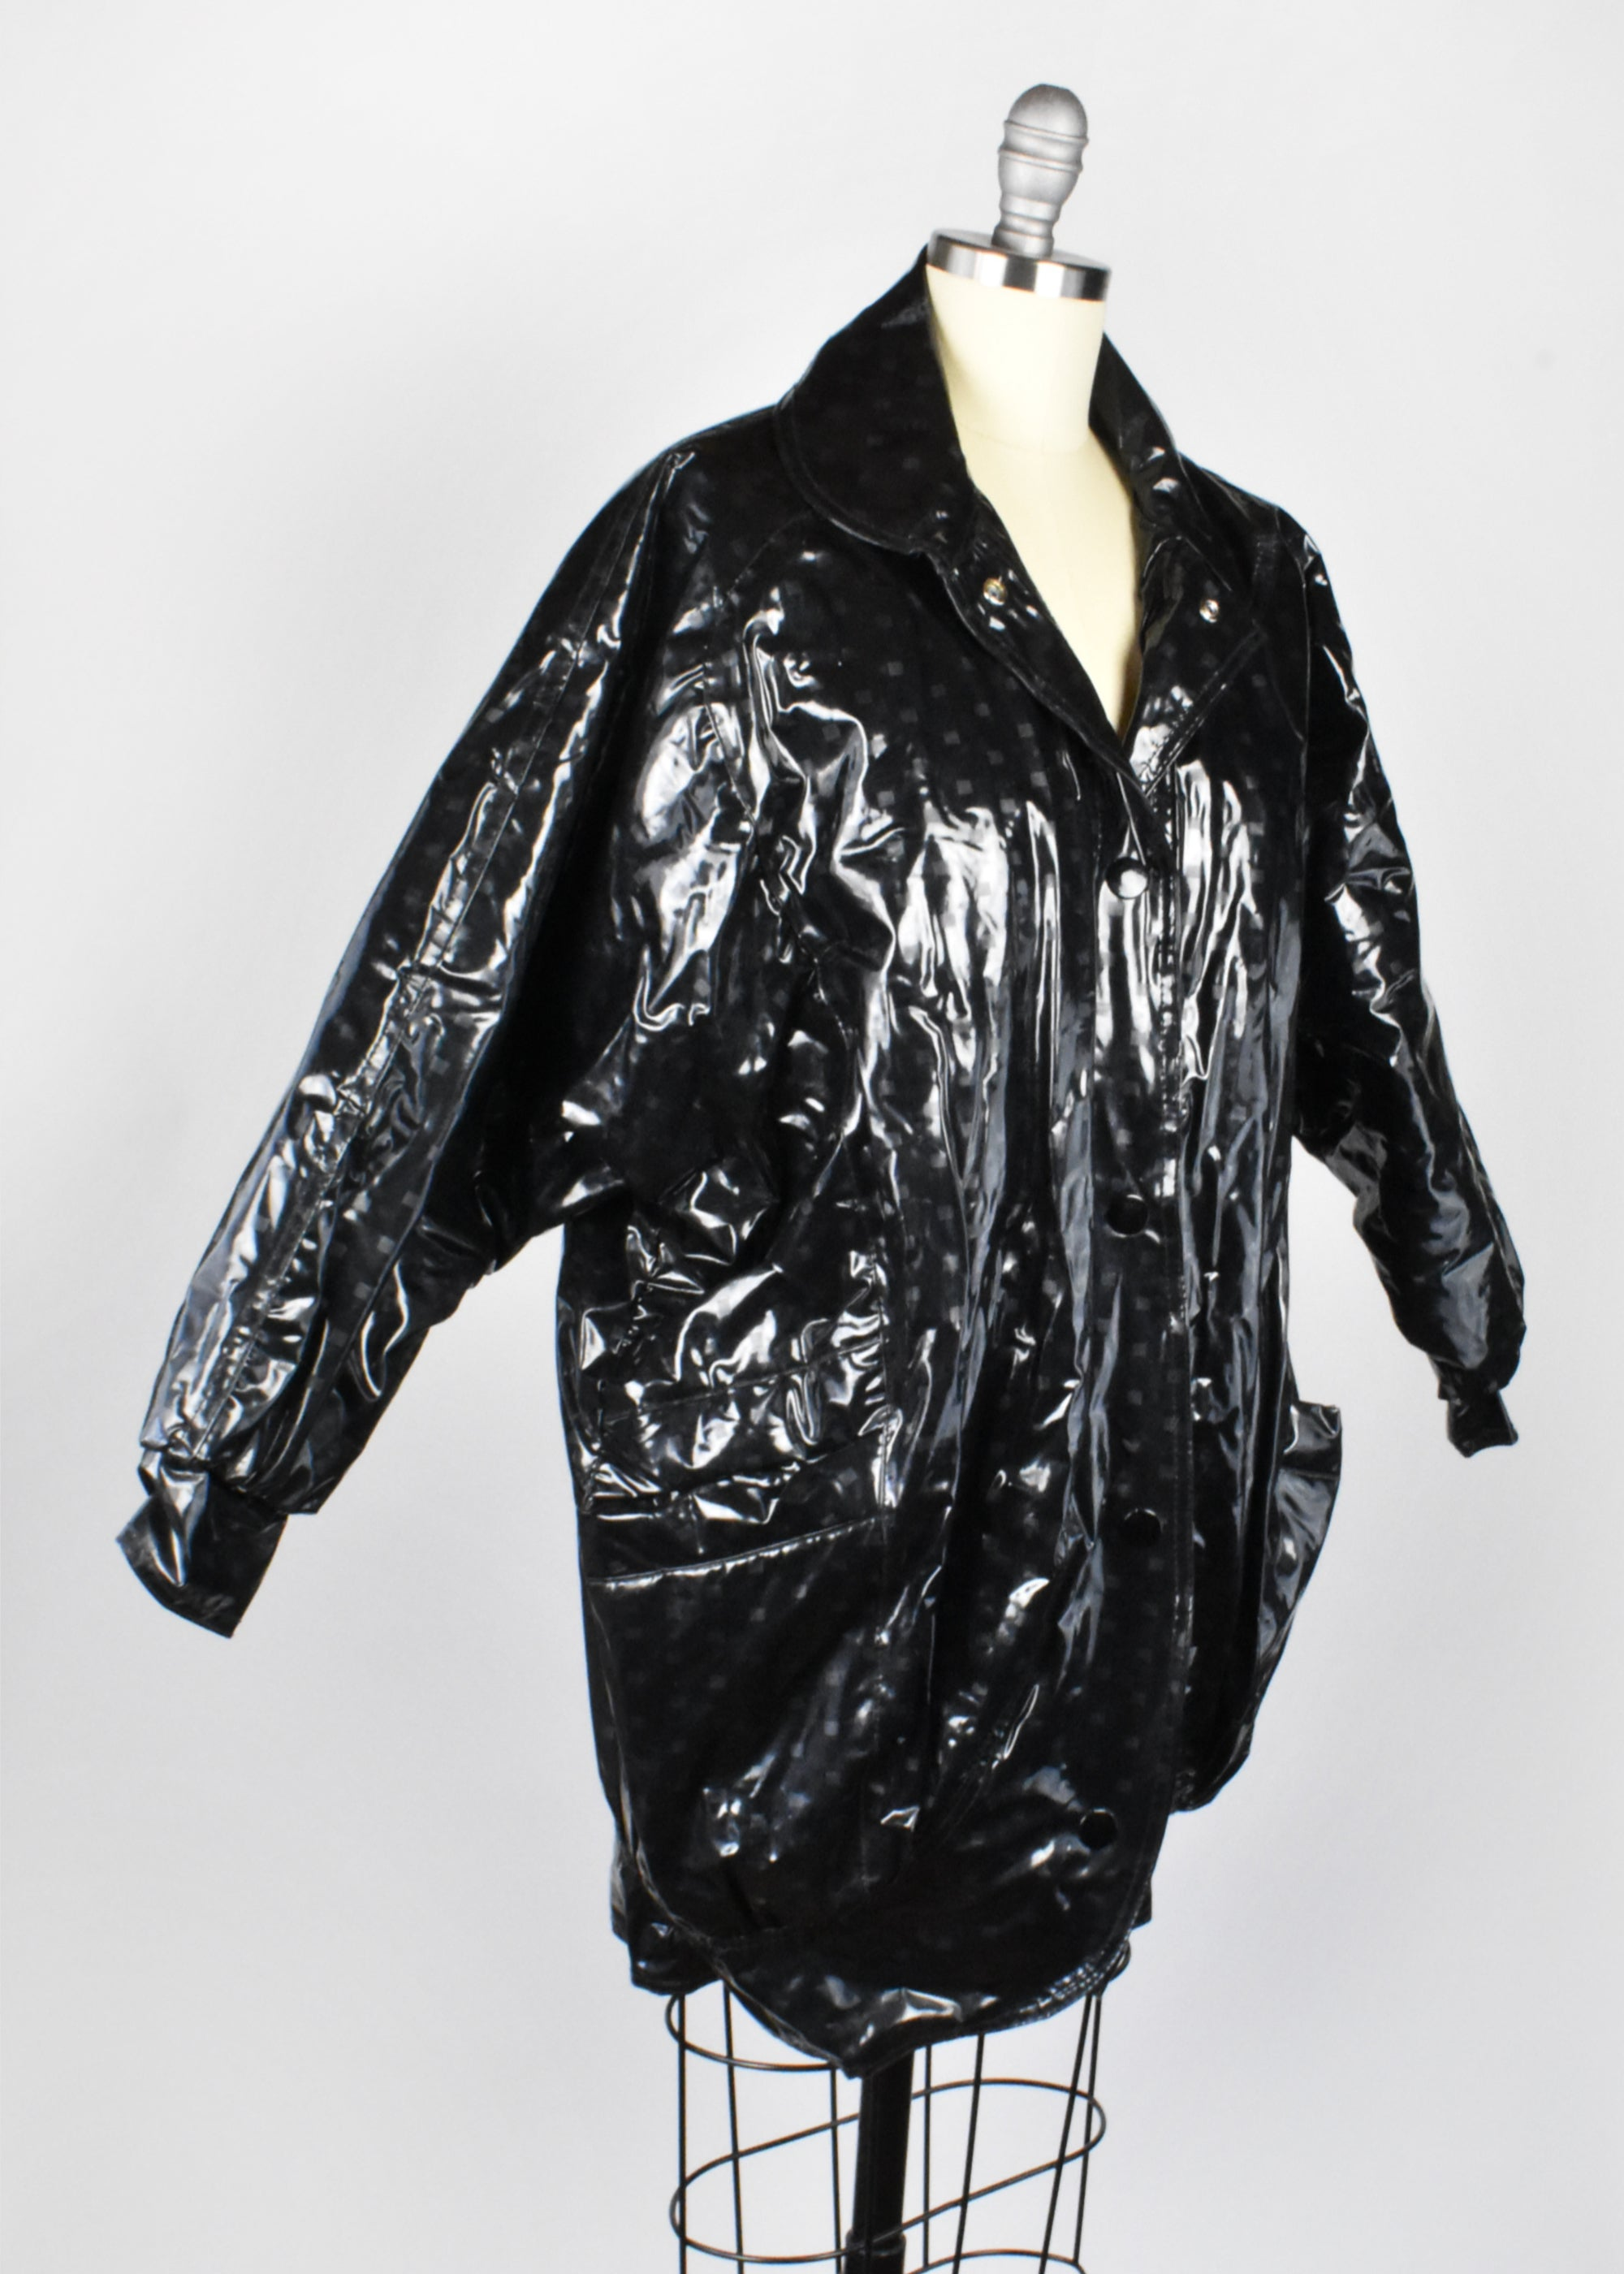 Vintage 1980's Puffy Black Raincoat by Avon Fashions